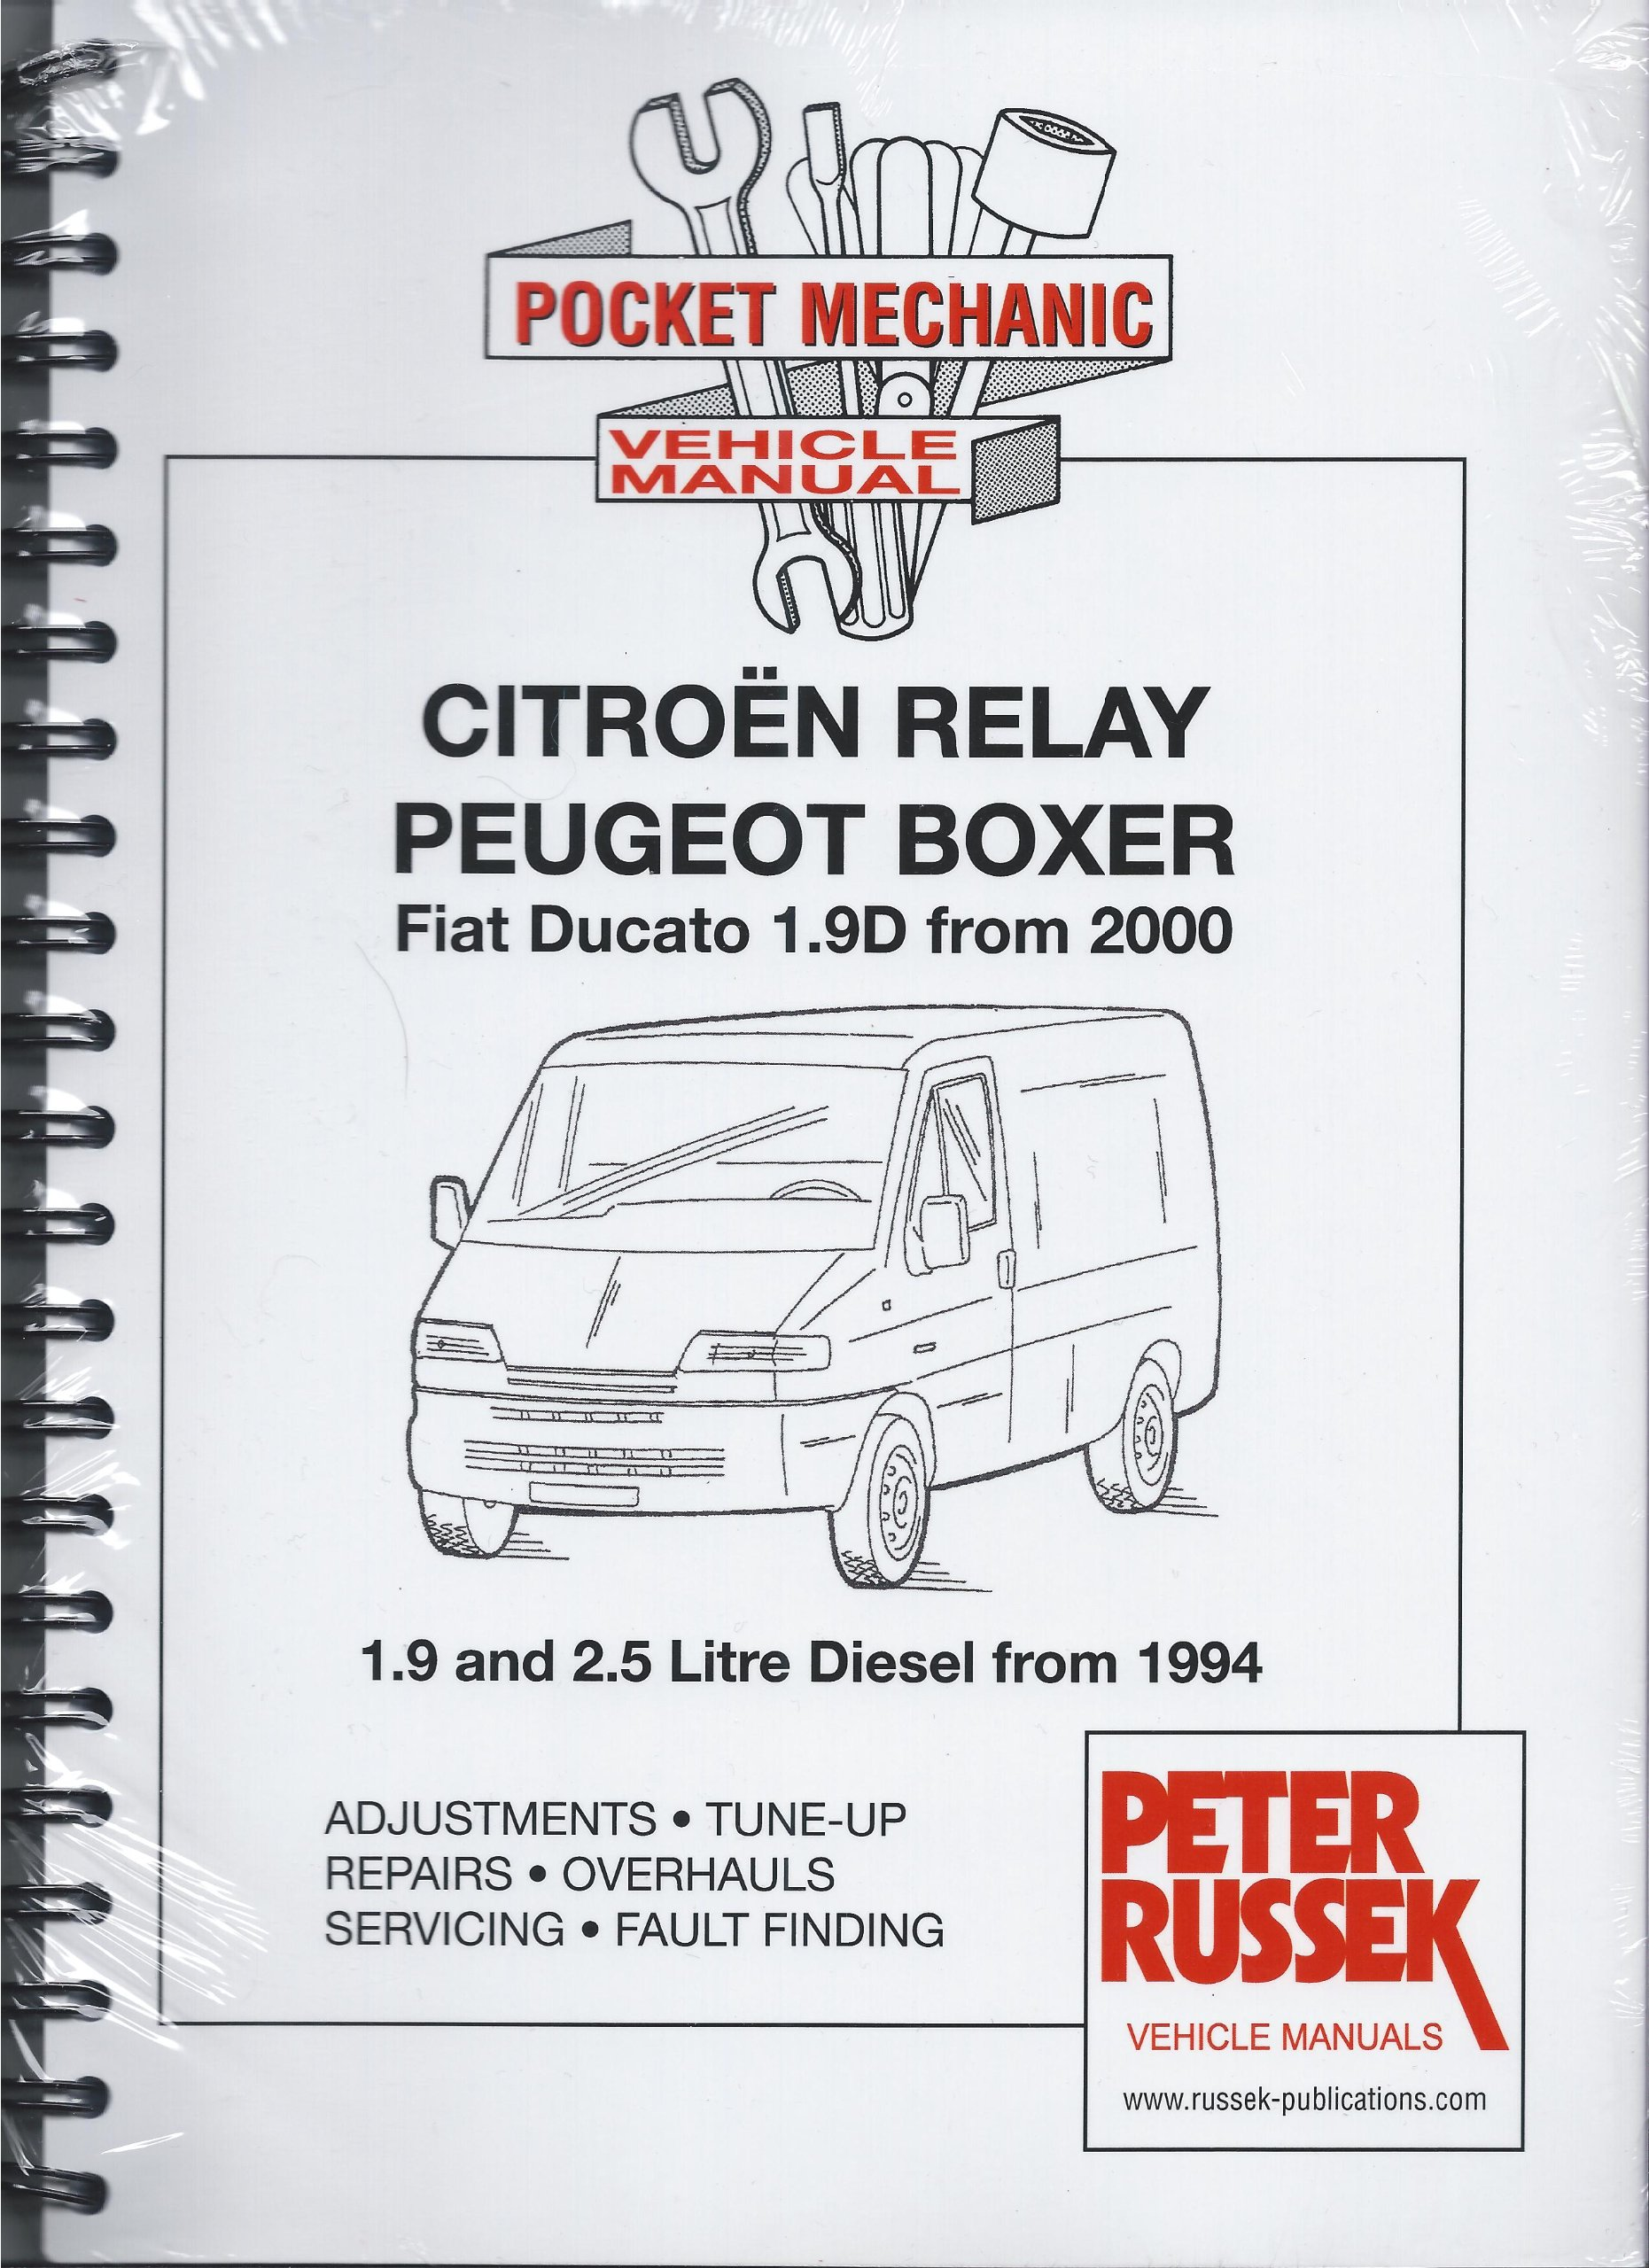 91ODzBCZeZL citroen relay, peugeot boxer 1 9 2 5 diesel from '94, fiat ducato citroen relay wiring diagram at honlapkeszites.co